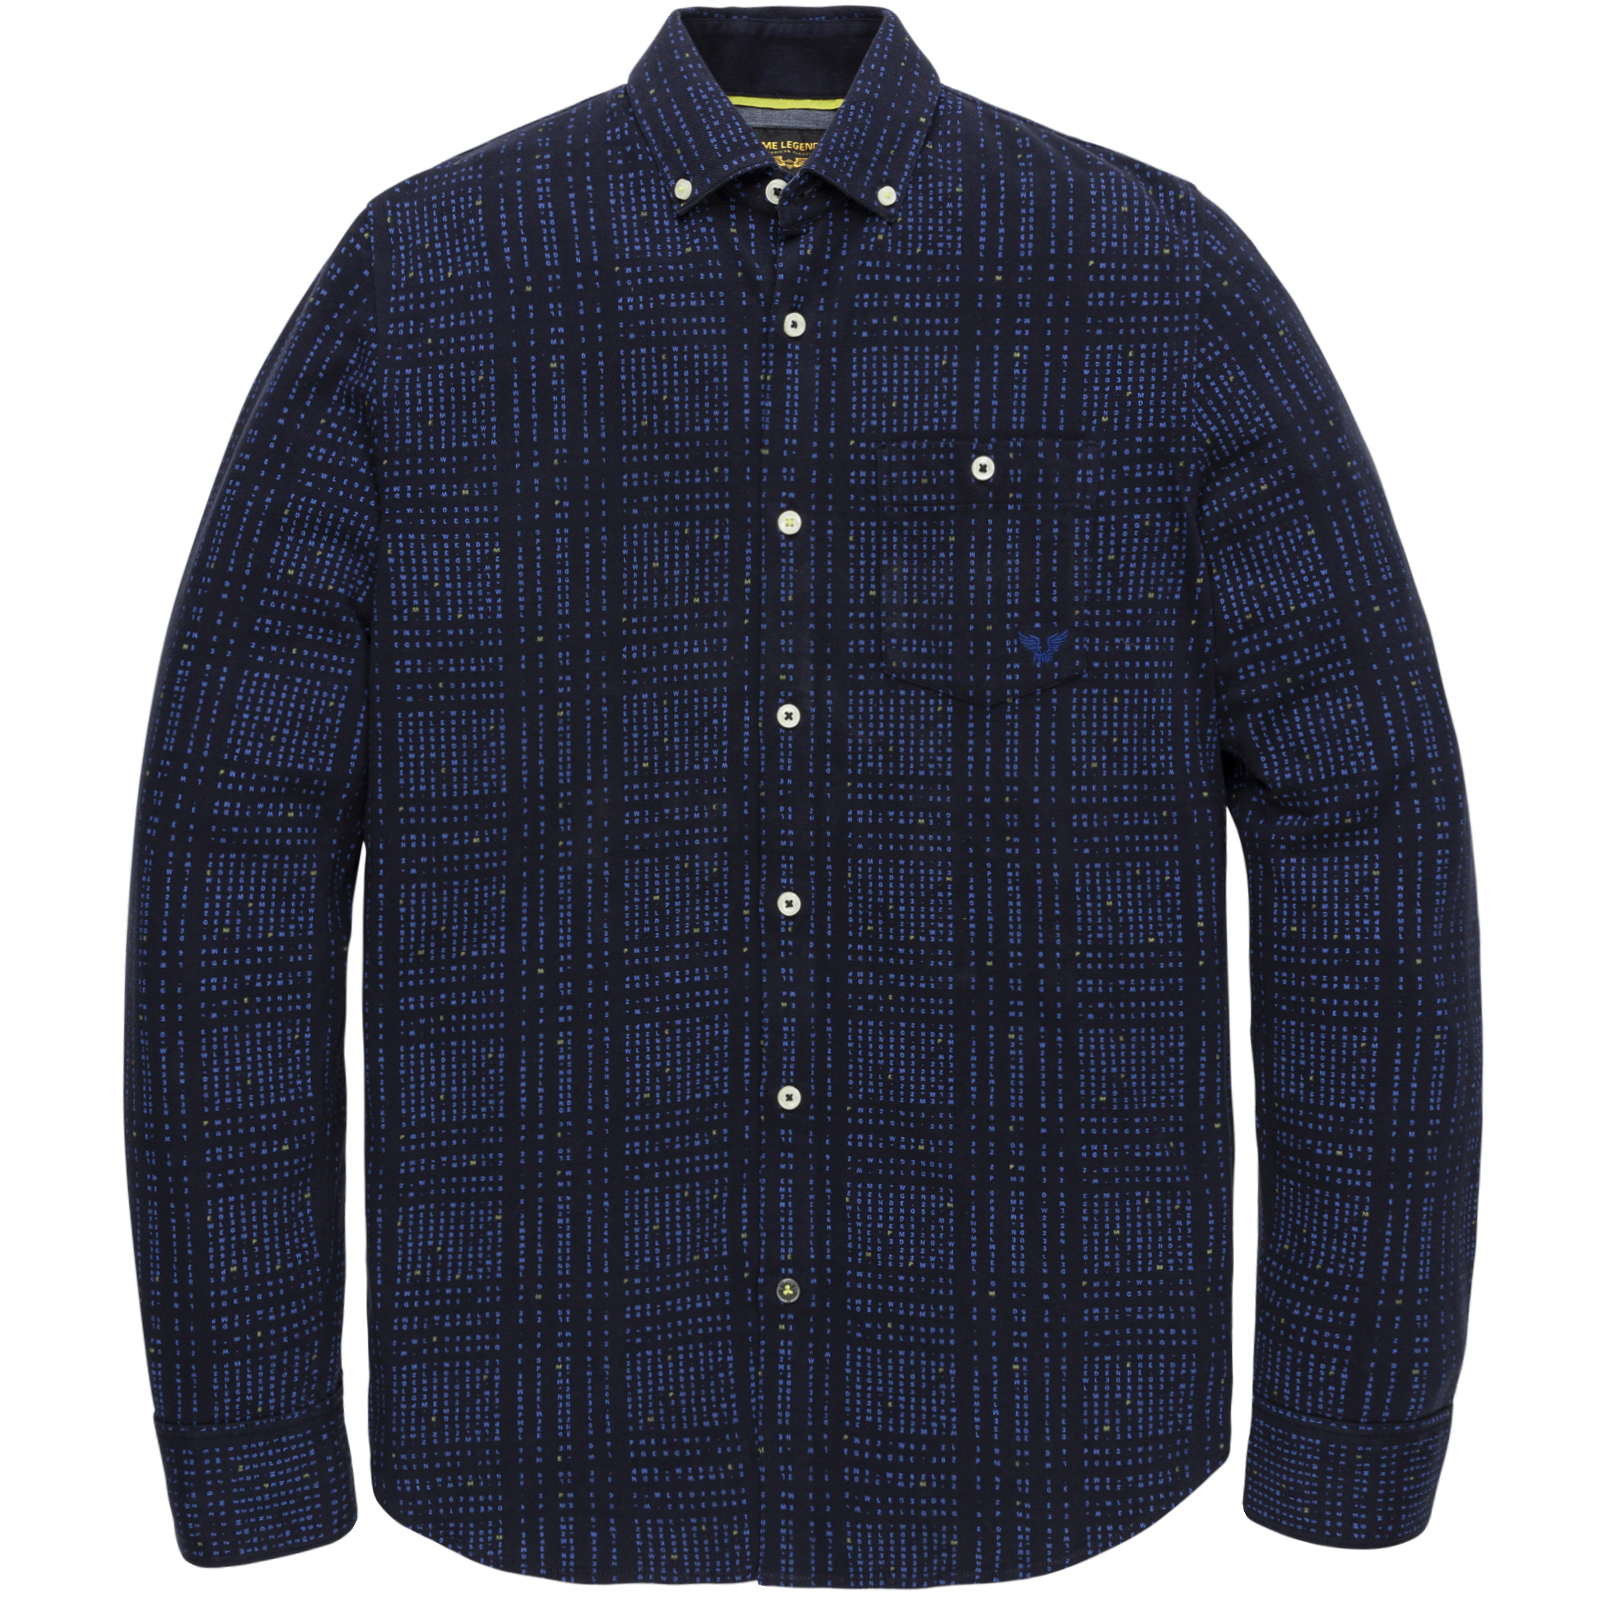 PME Legend PSI206203 5288 PME Legend long sleeve shirt pique with all-over print Blue